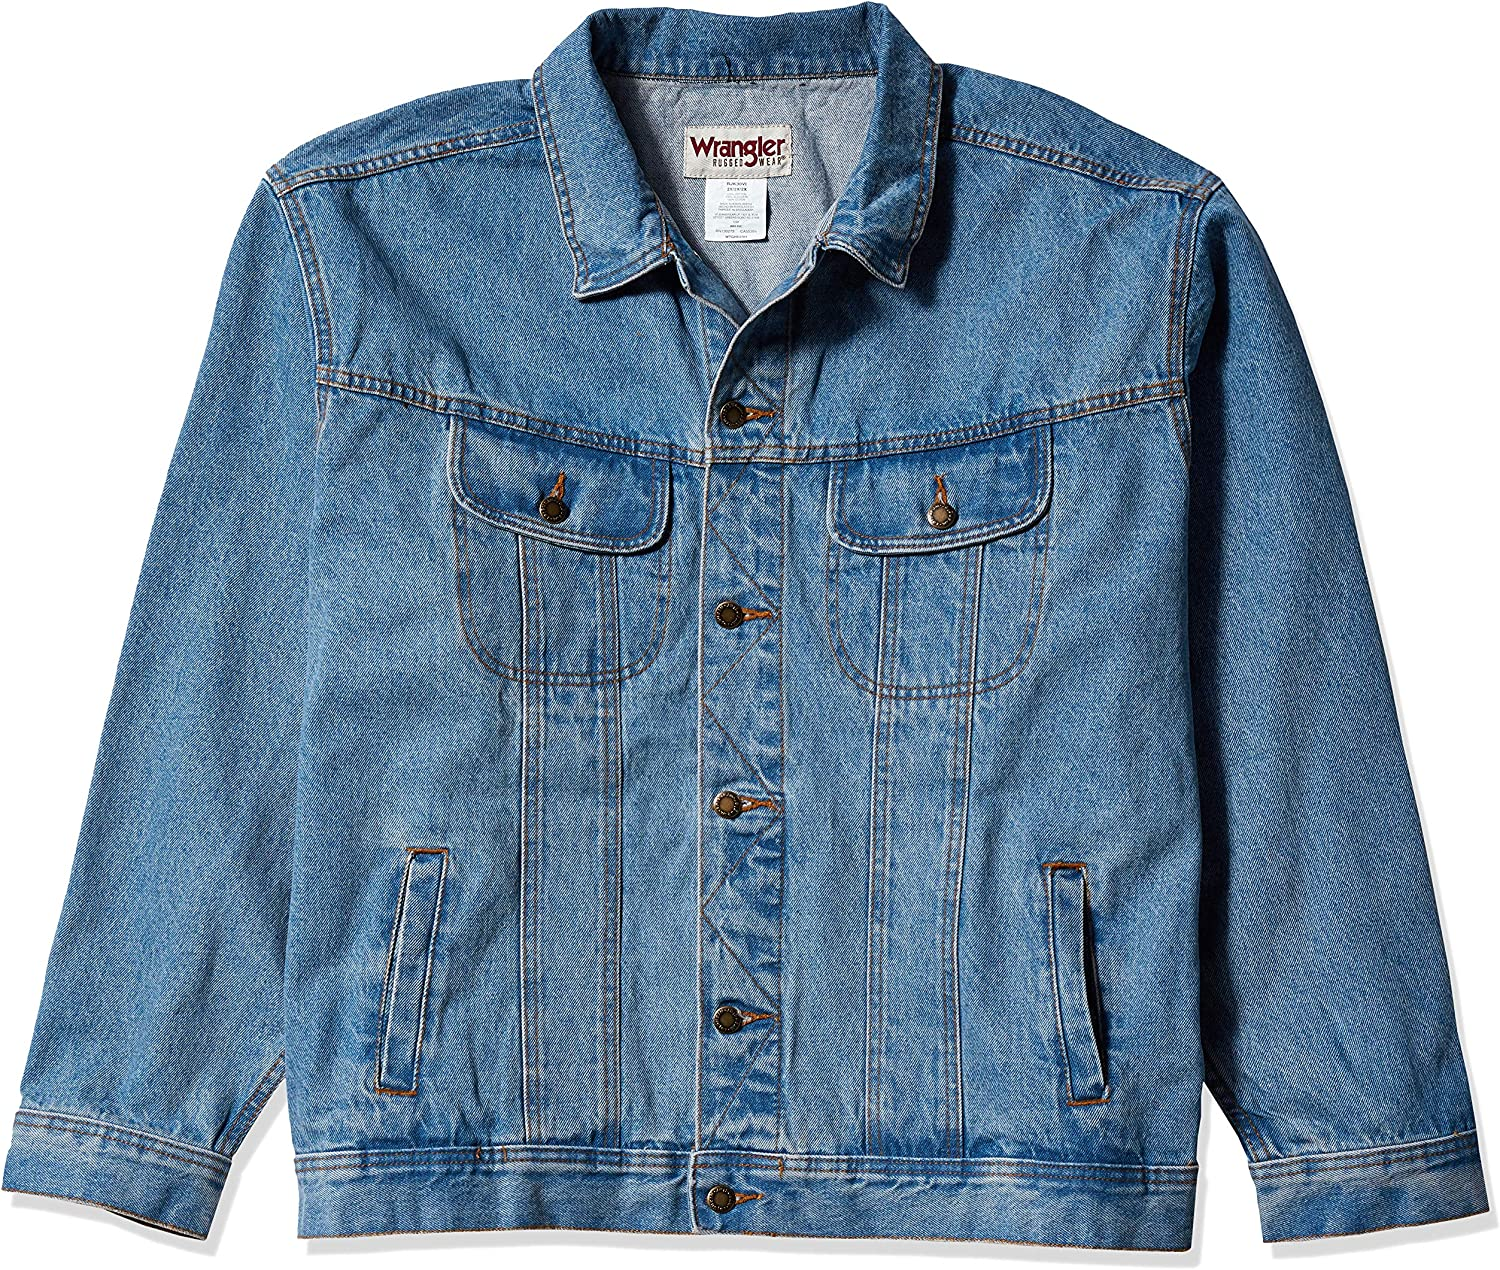 Wrangler Men's Rugged Wear Unlined Denim Jacket at  Men's Clothing store